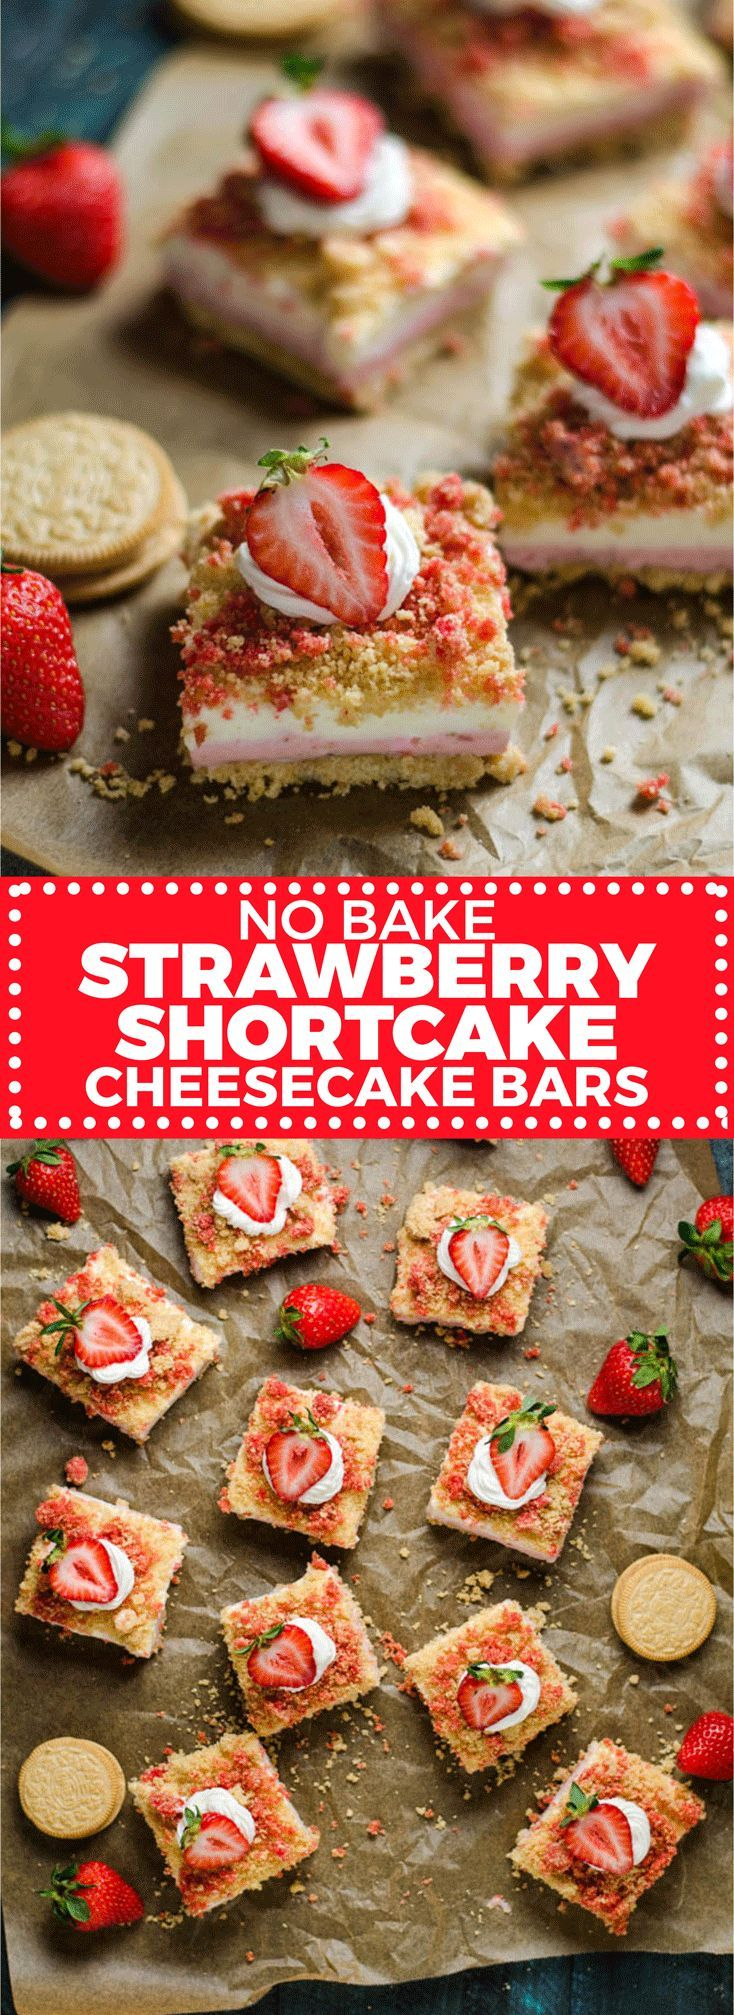 No Bake Strawberry Shortcake Cheesecake Bars. Like the popsicles of your youth, but 100 times better. A rich, sweet, tangy, and delicious dessert. | http://hostthetoast.com